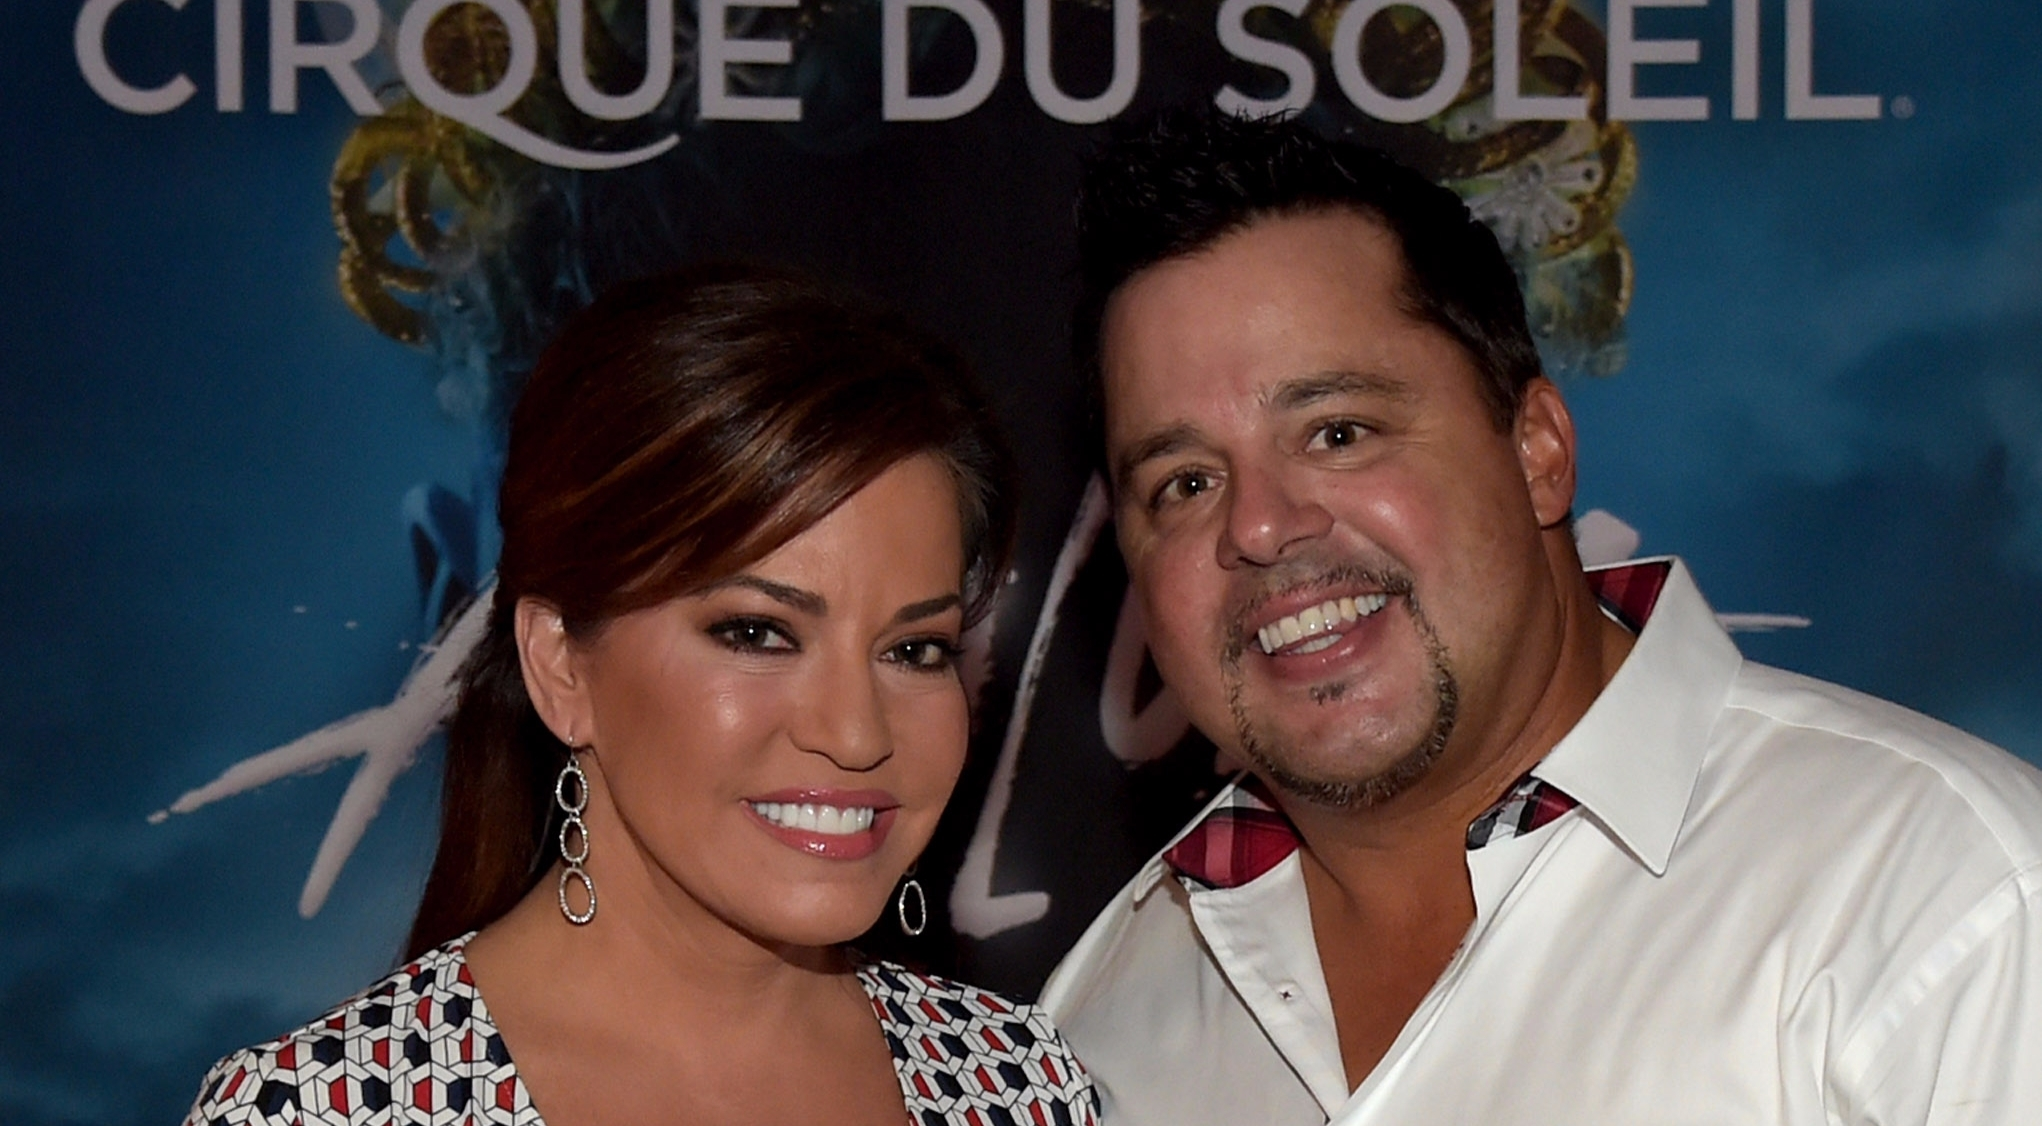 The happily married longtime couple Tim Yeager and Robin Meade